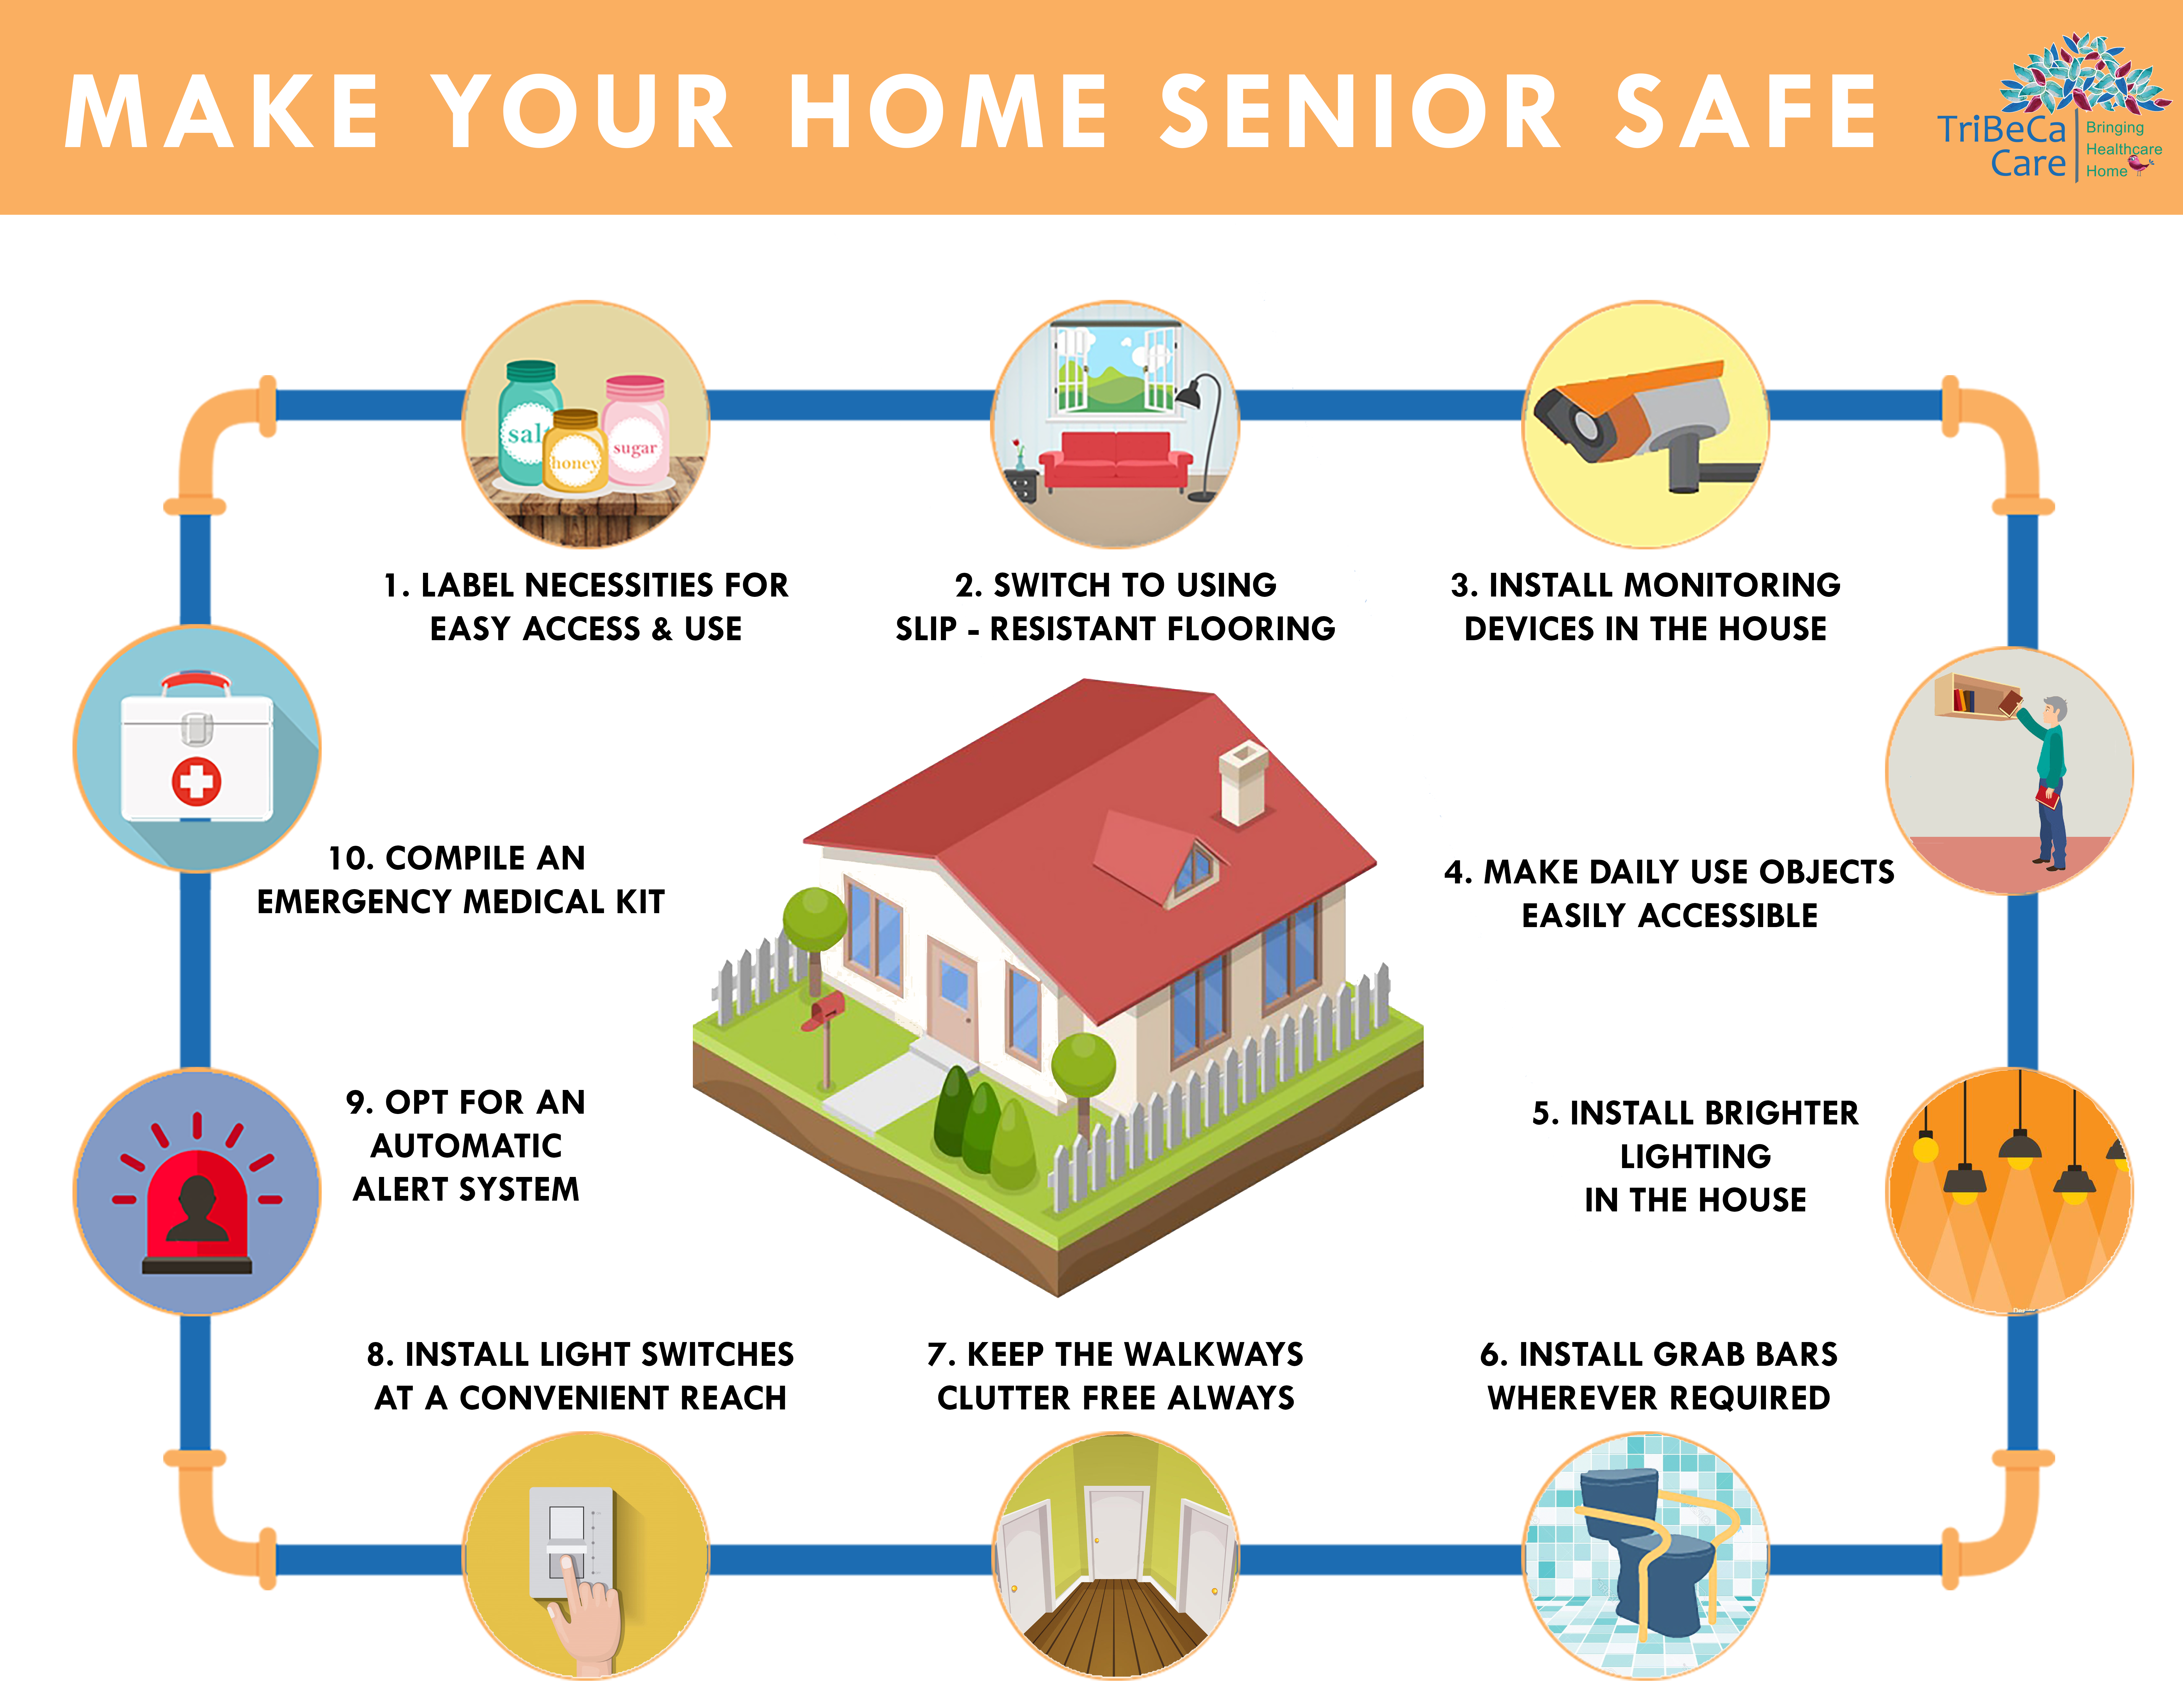 10 Must Haves for Senior Safety Home Security & Safety